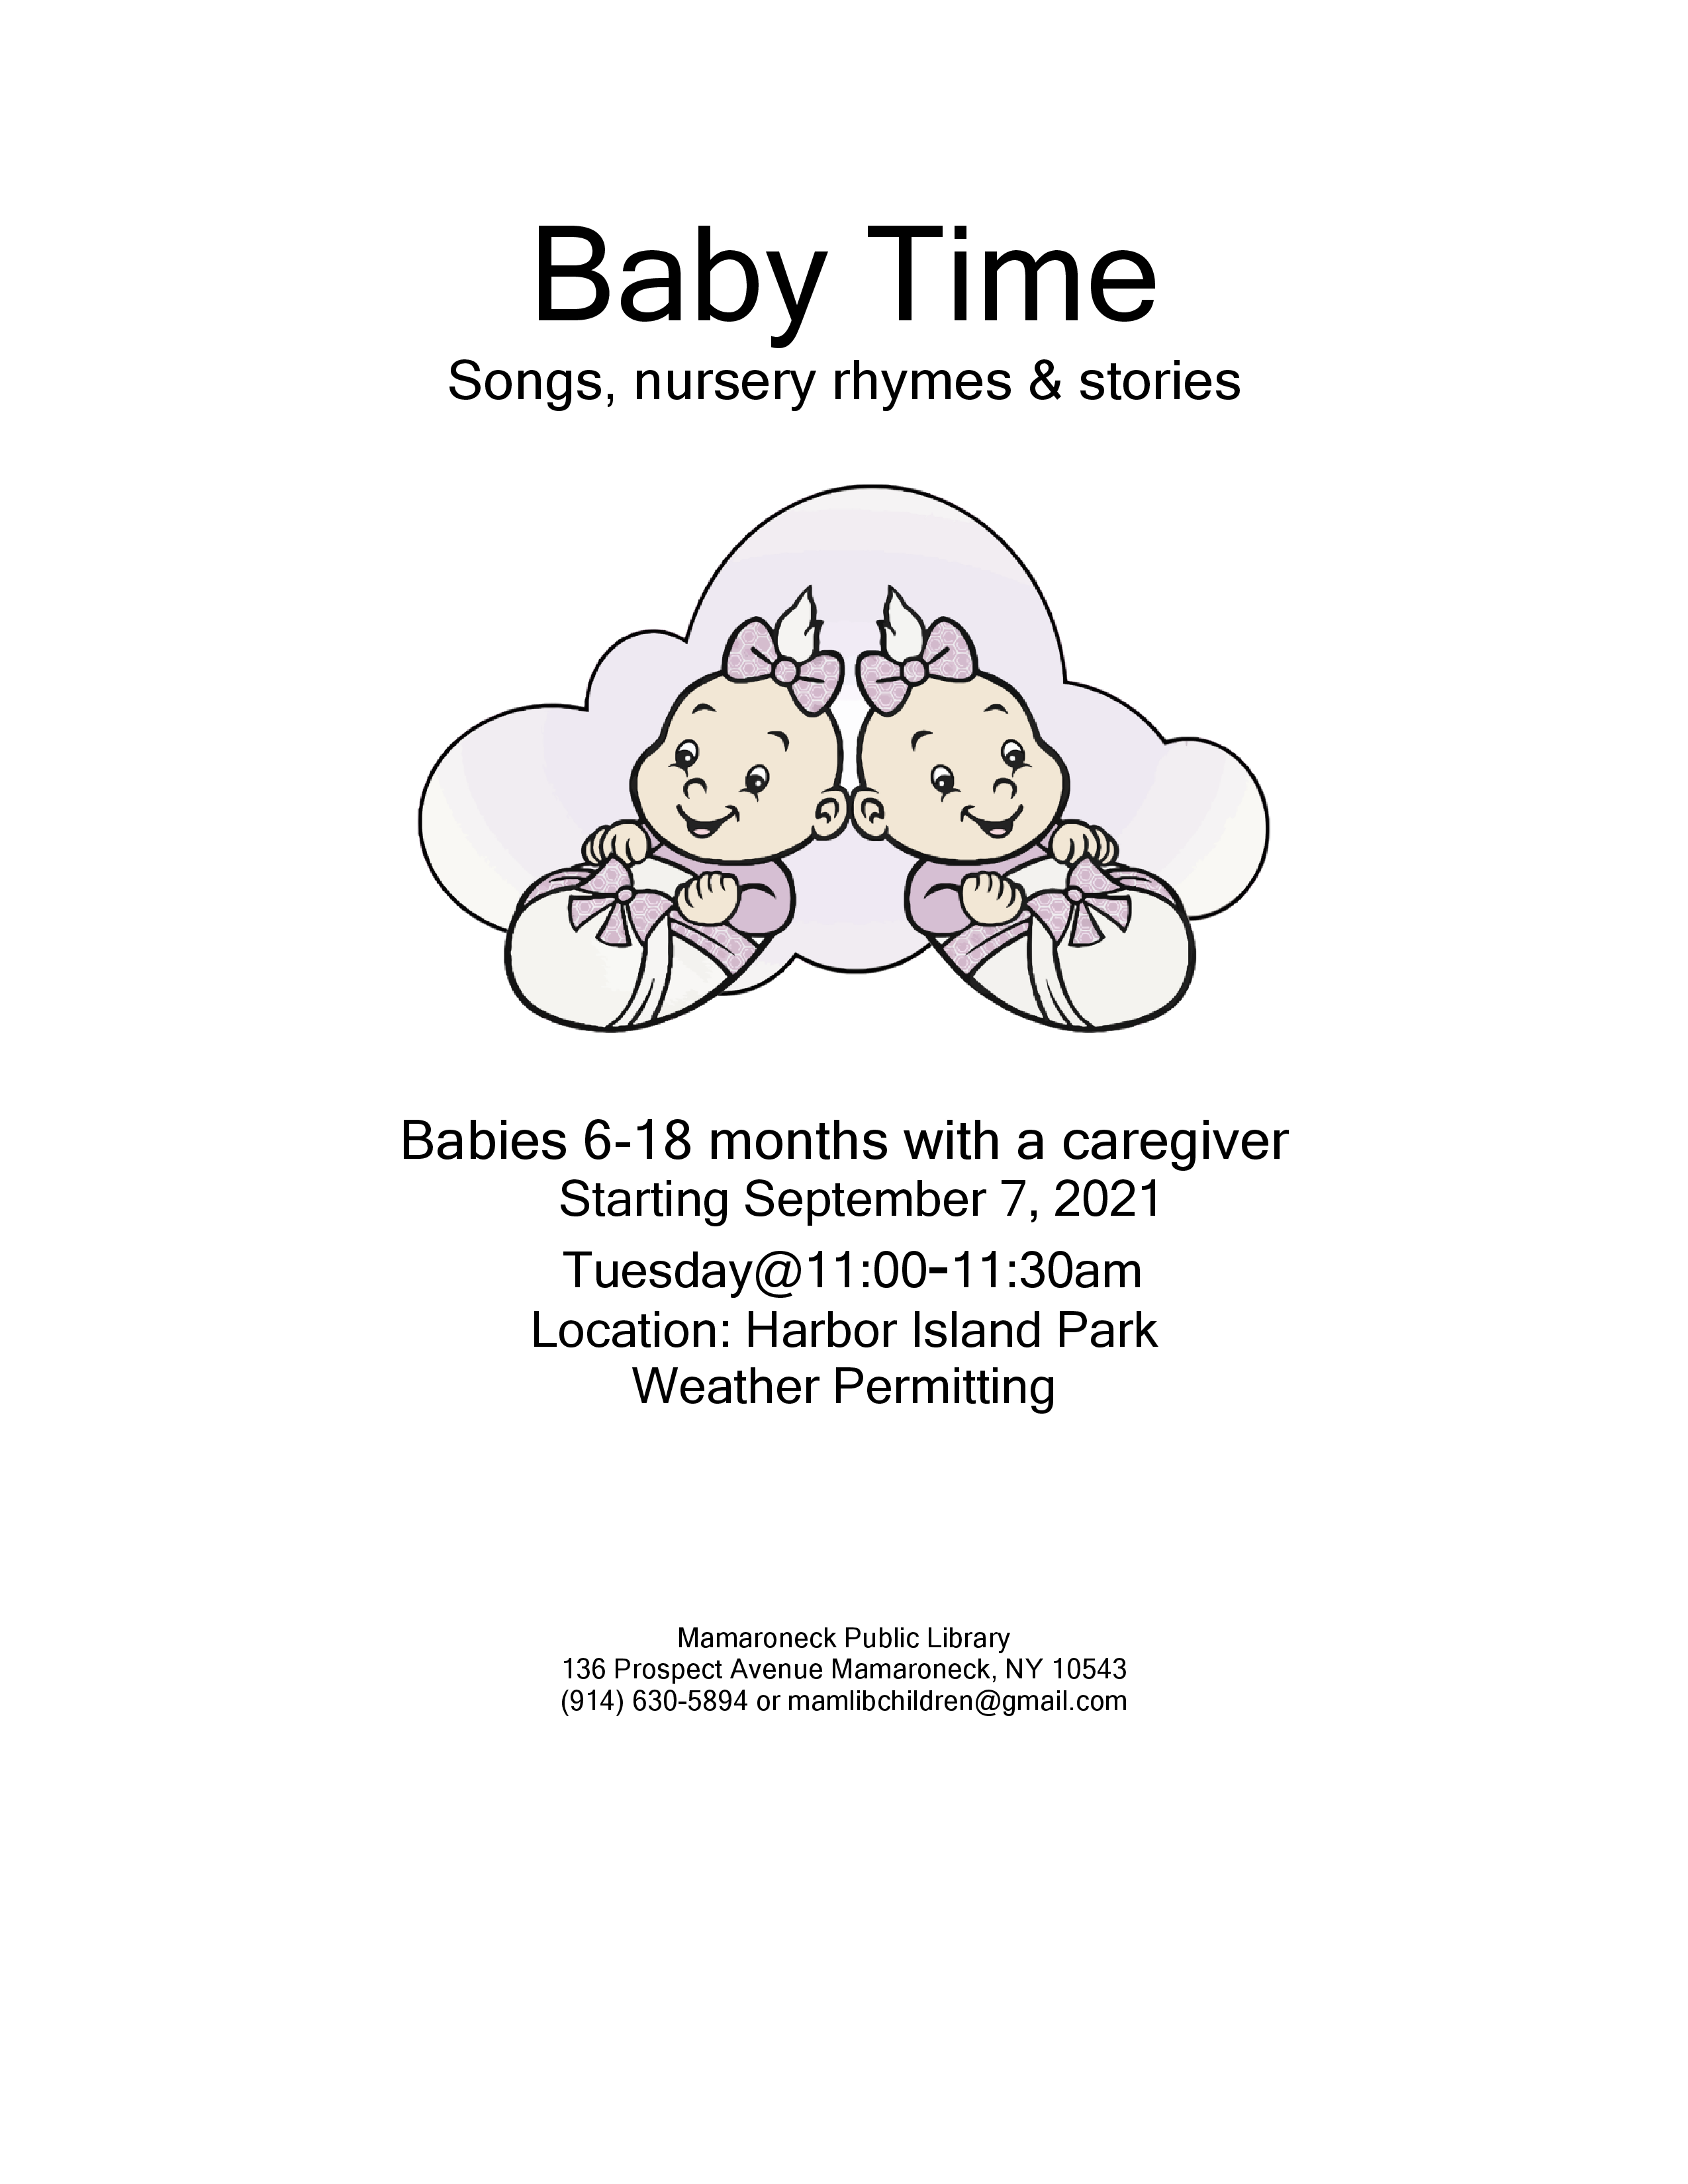 Baby Time for children